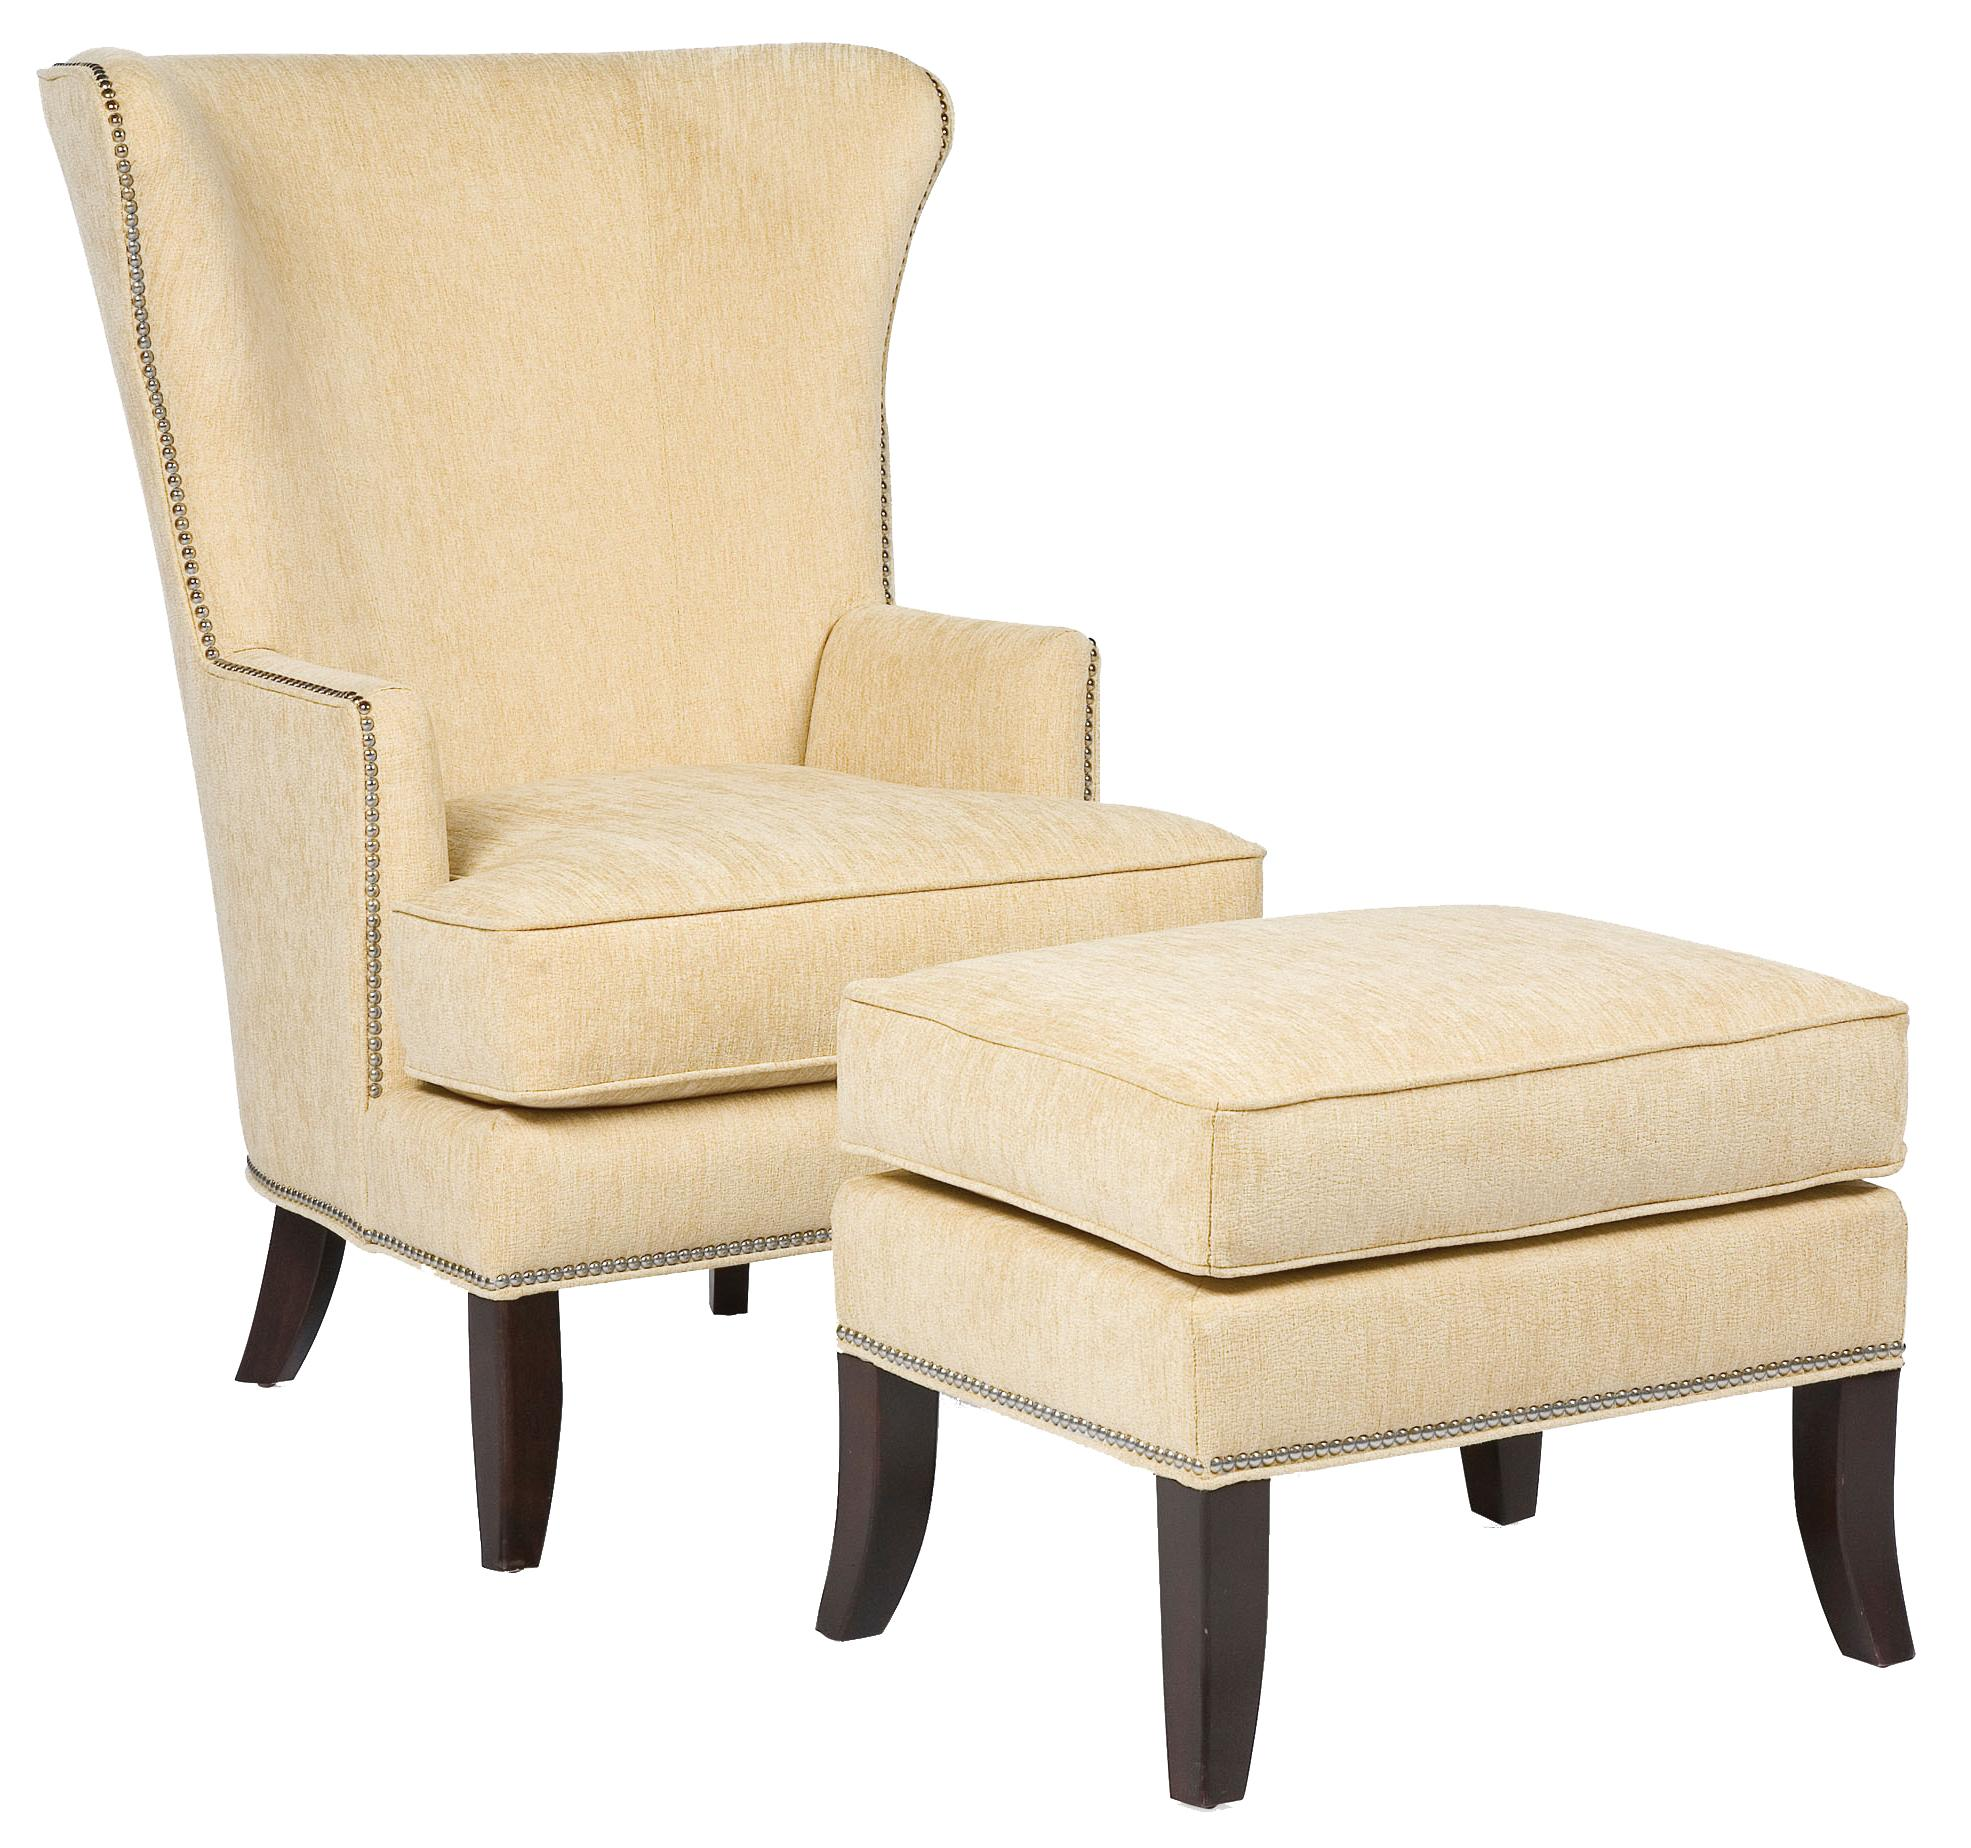 Fairfield Chairs Contemporary Chair & Ottoman - Item Number: 5147-01+20